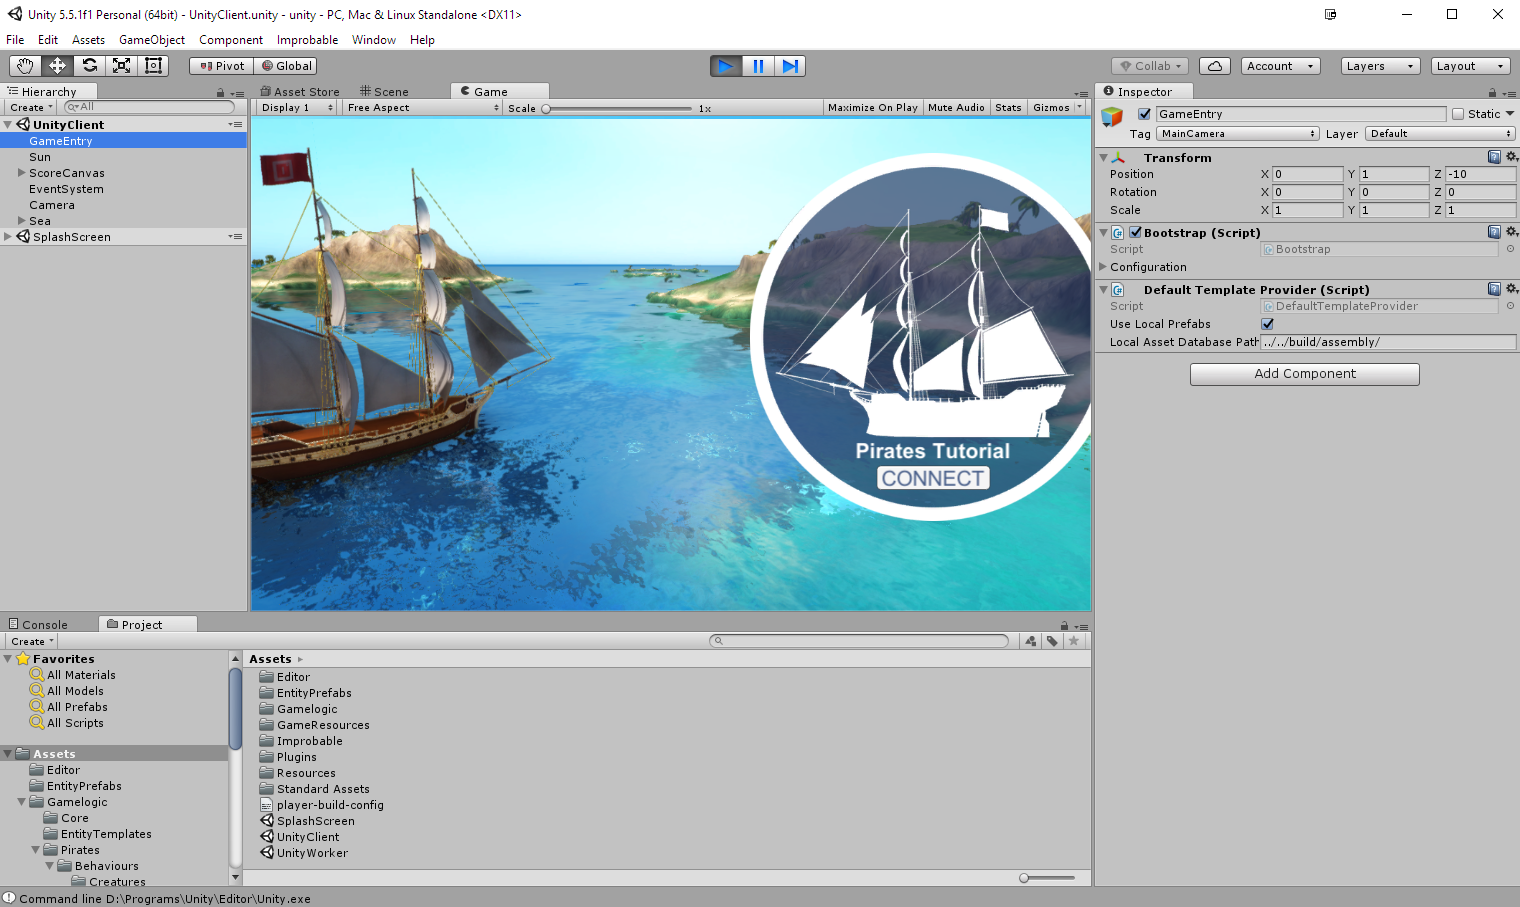 View from Unity Client